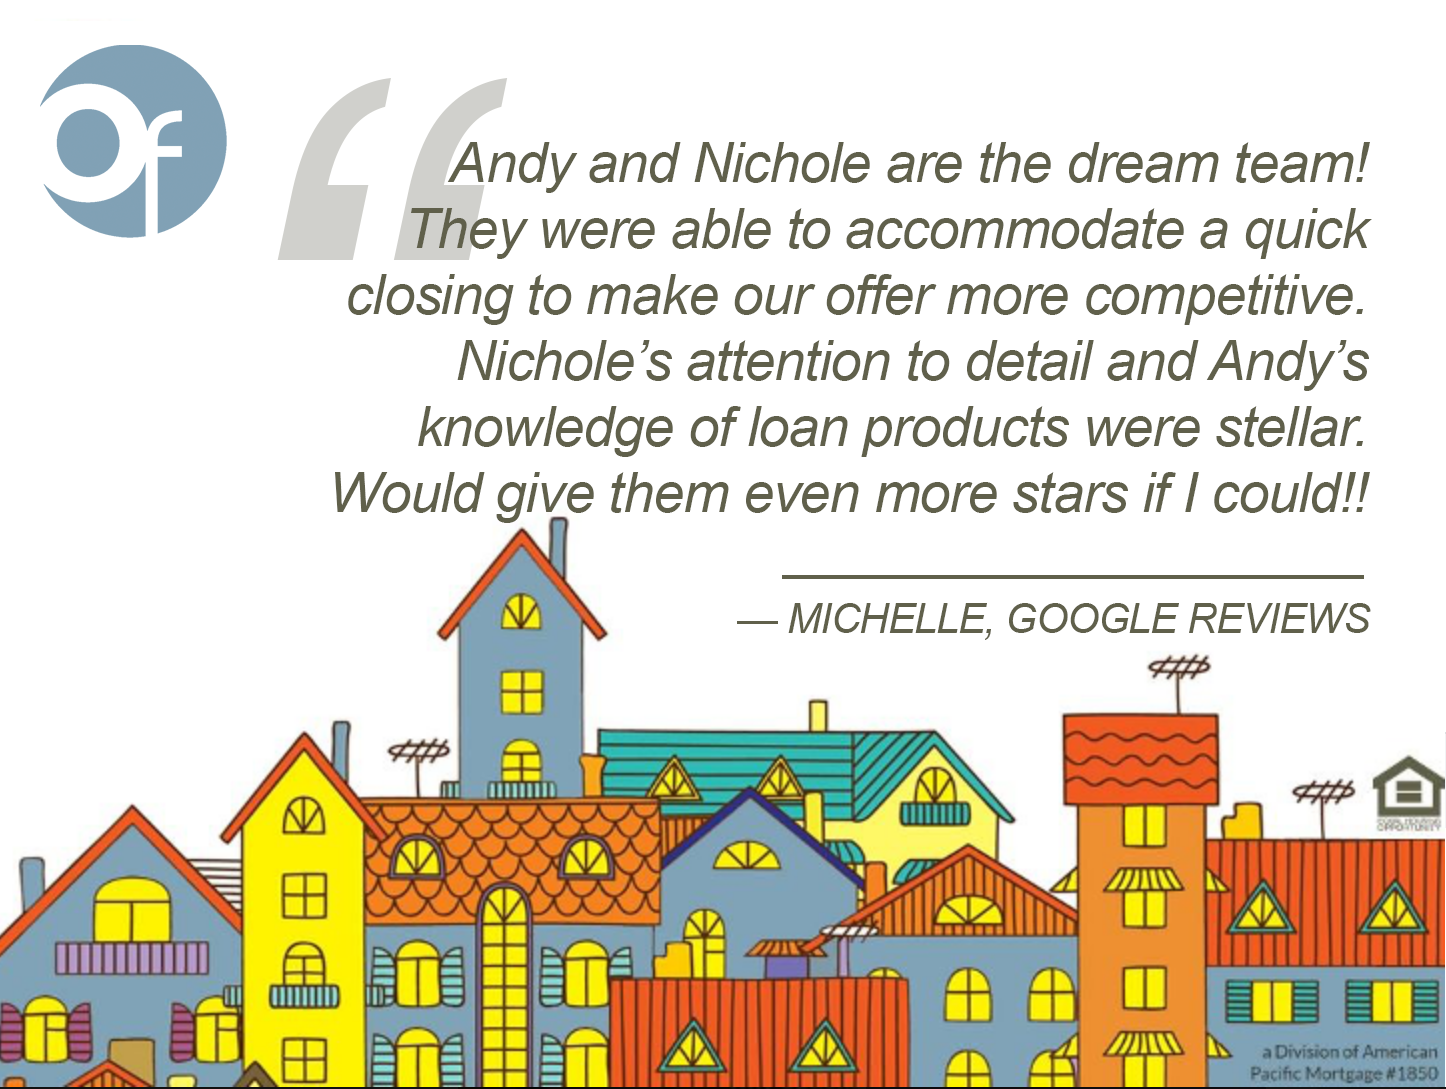 Andy and Nichole are the dream team! They were able to accommodate a quick closing to make our offer more competitive. 